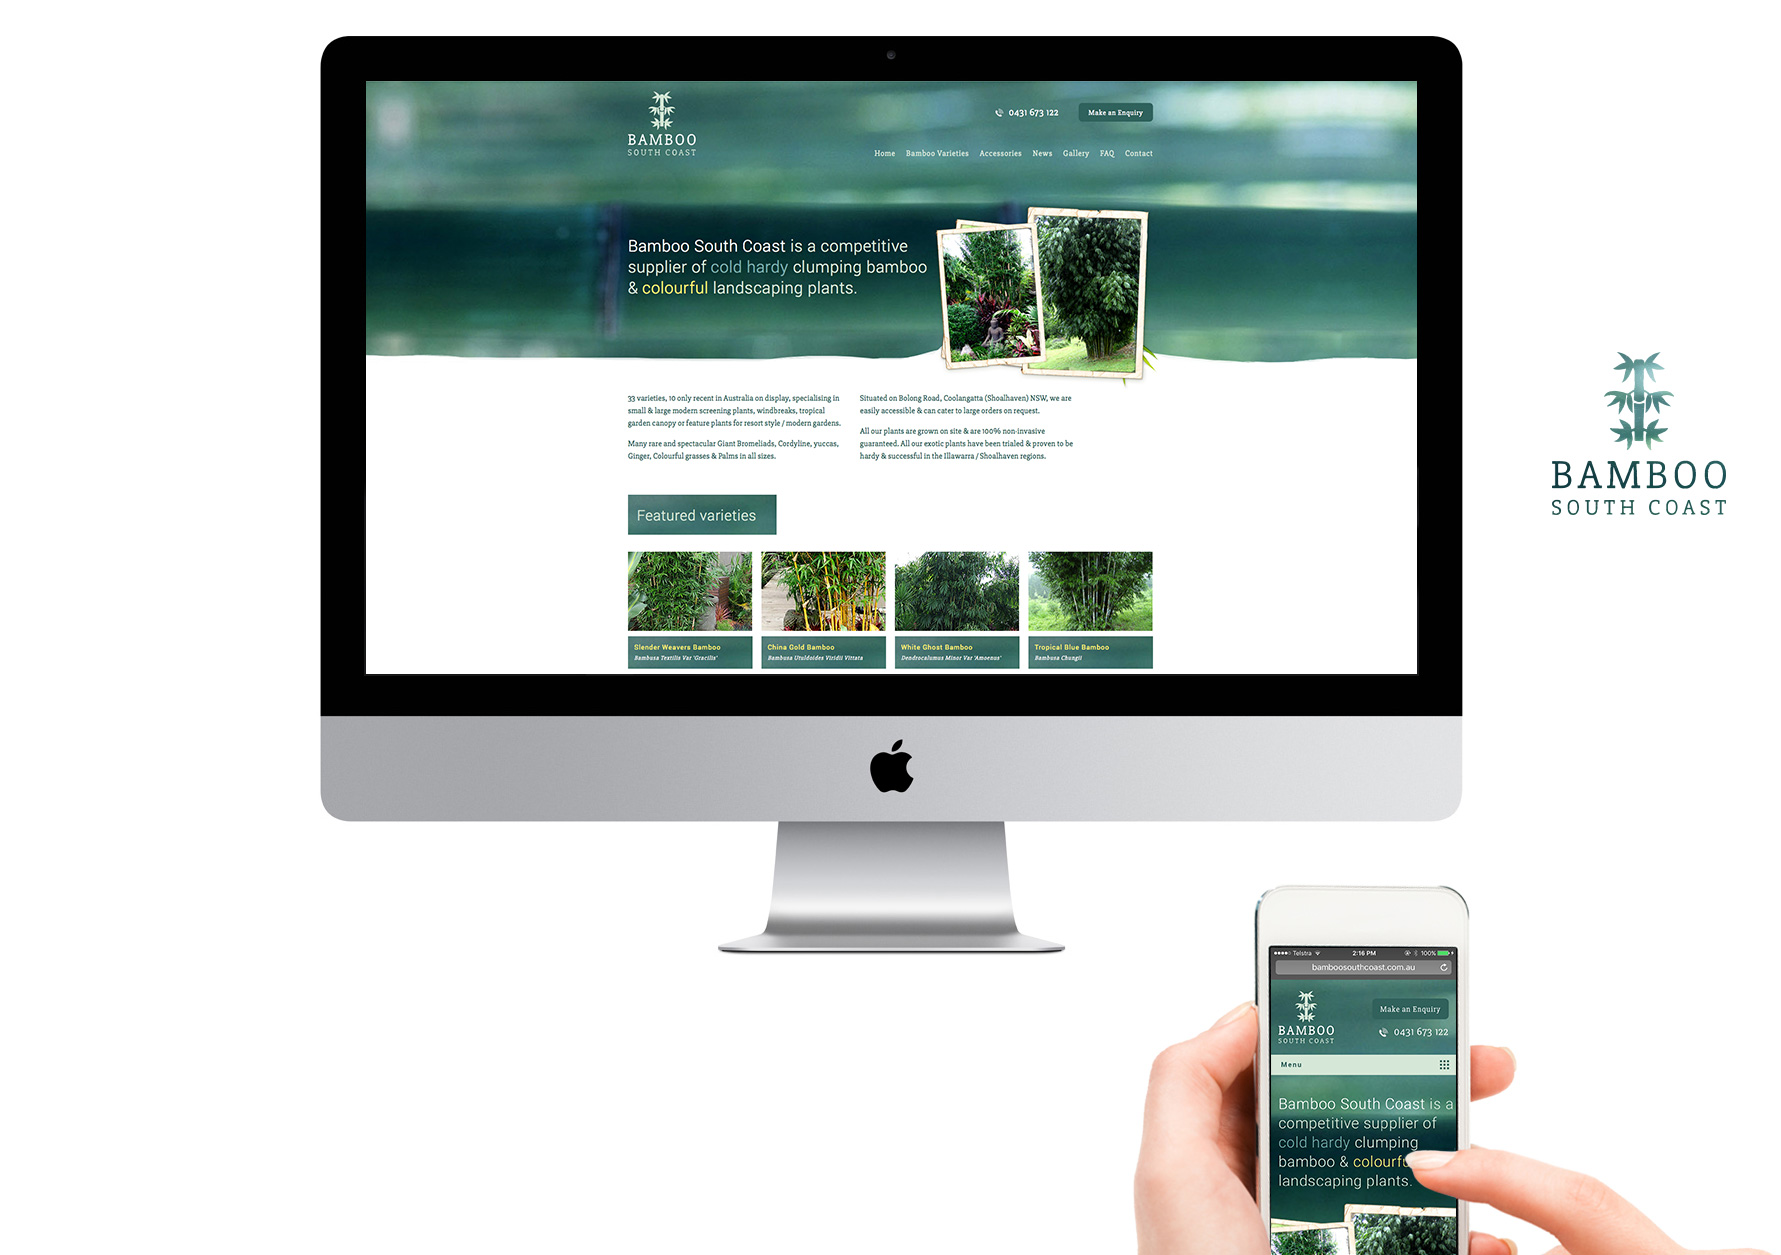 Bamboo South Coast - Branding and web design